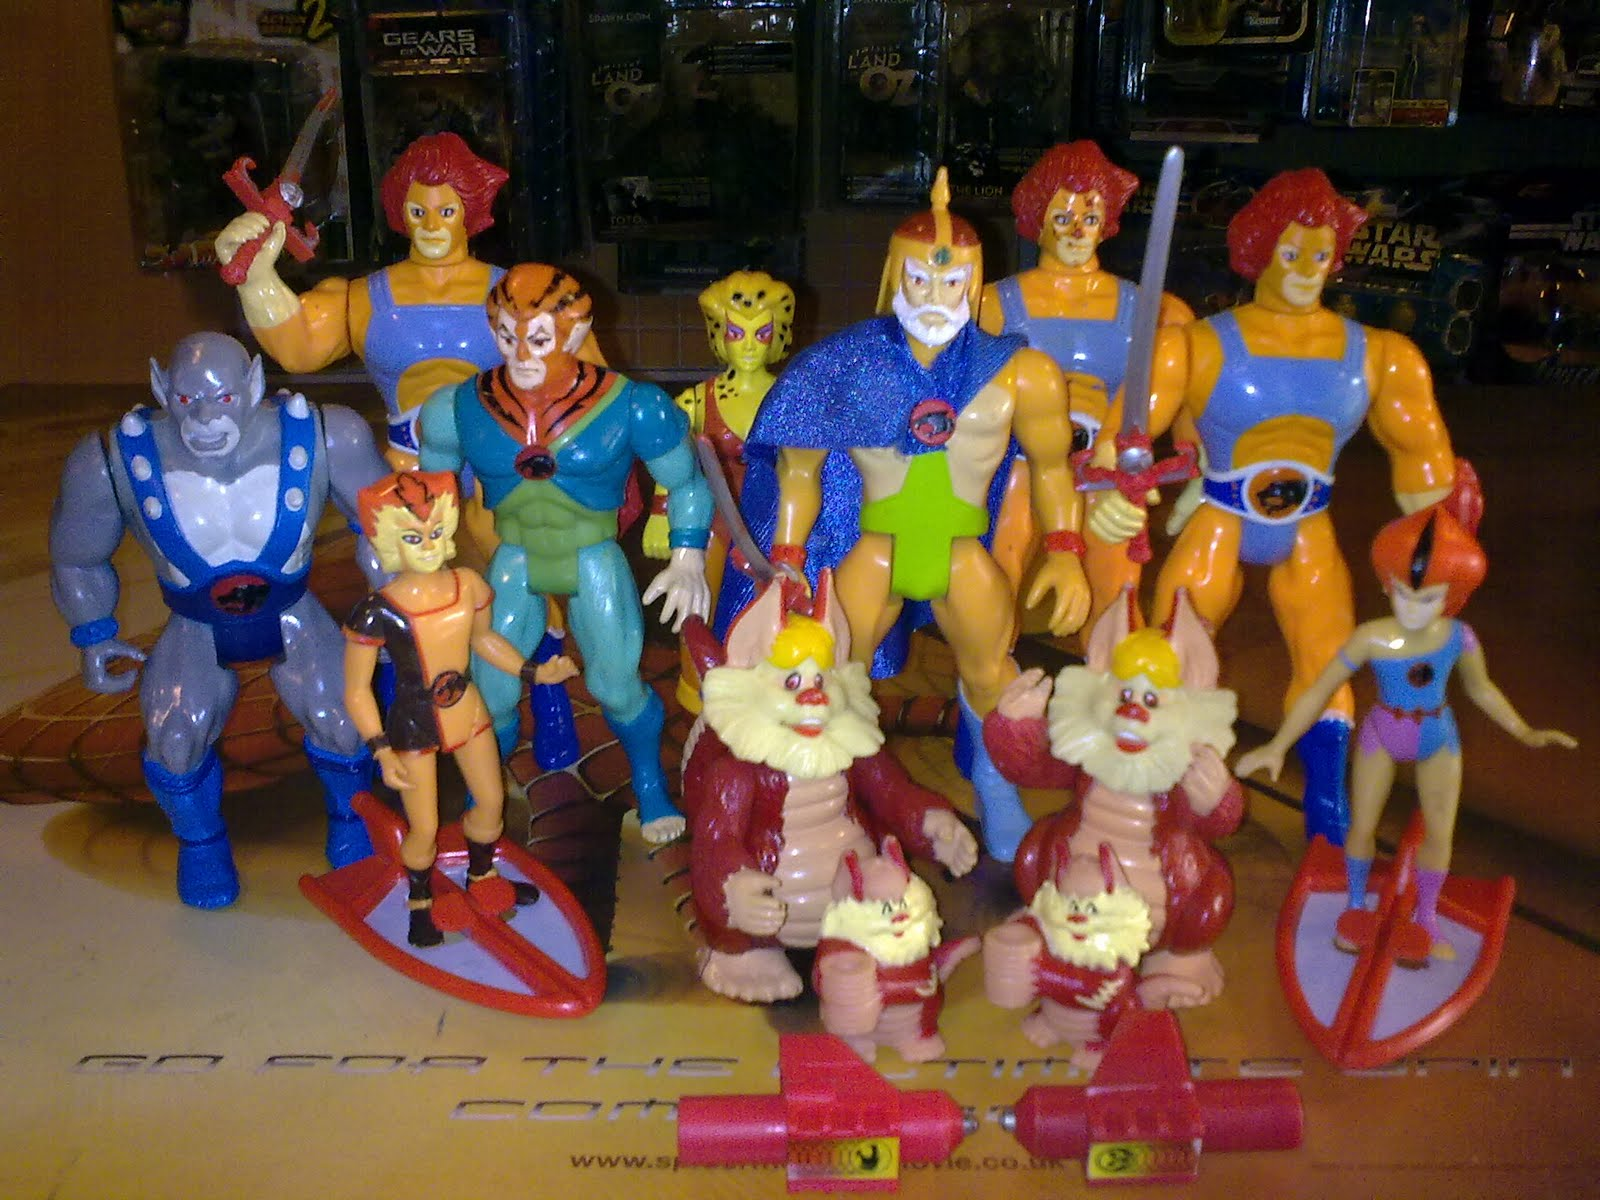 Rare Toys From The 80s : Toy workers thundercats s vintage figure landed in